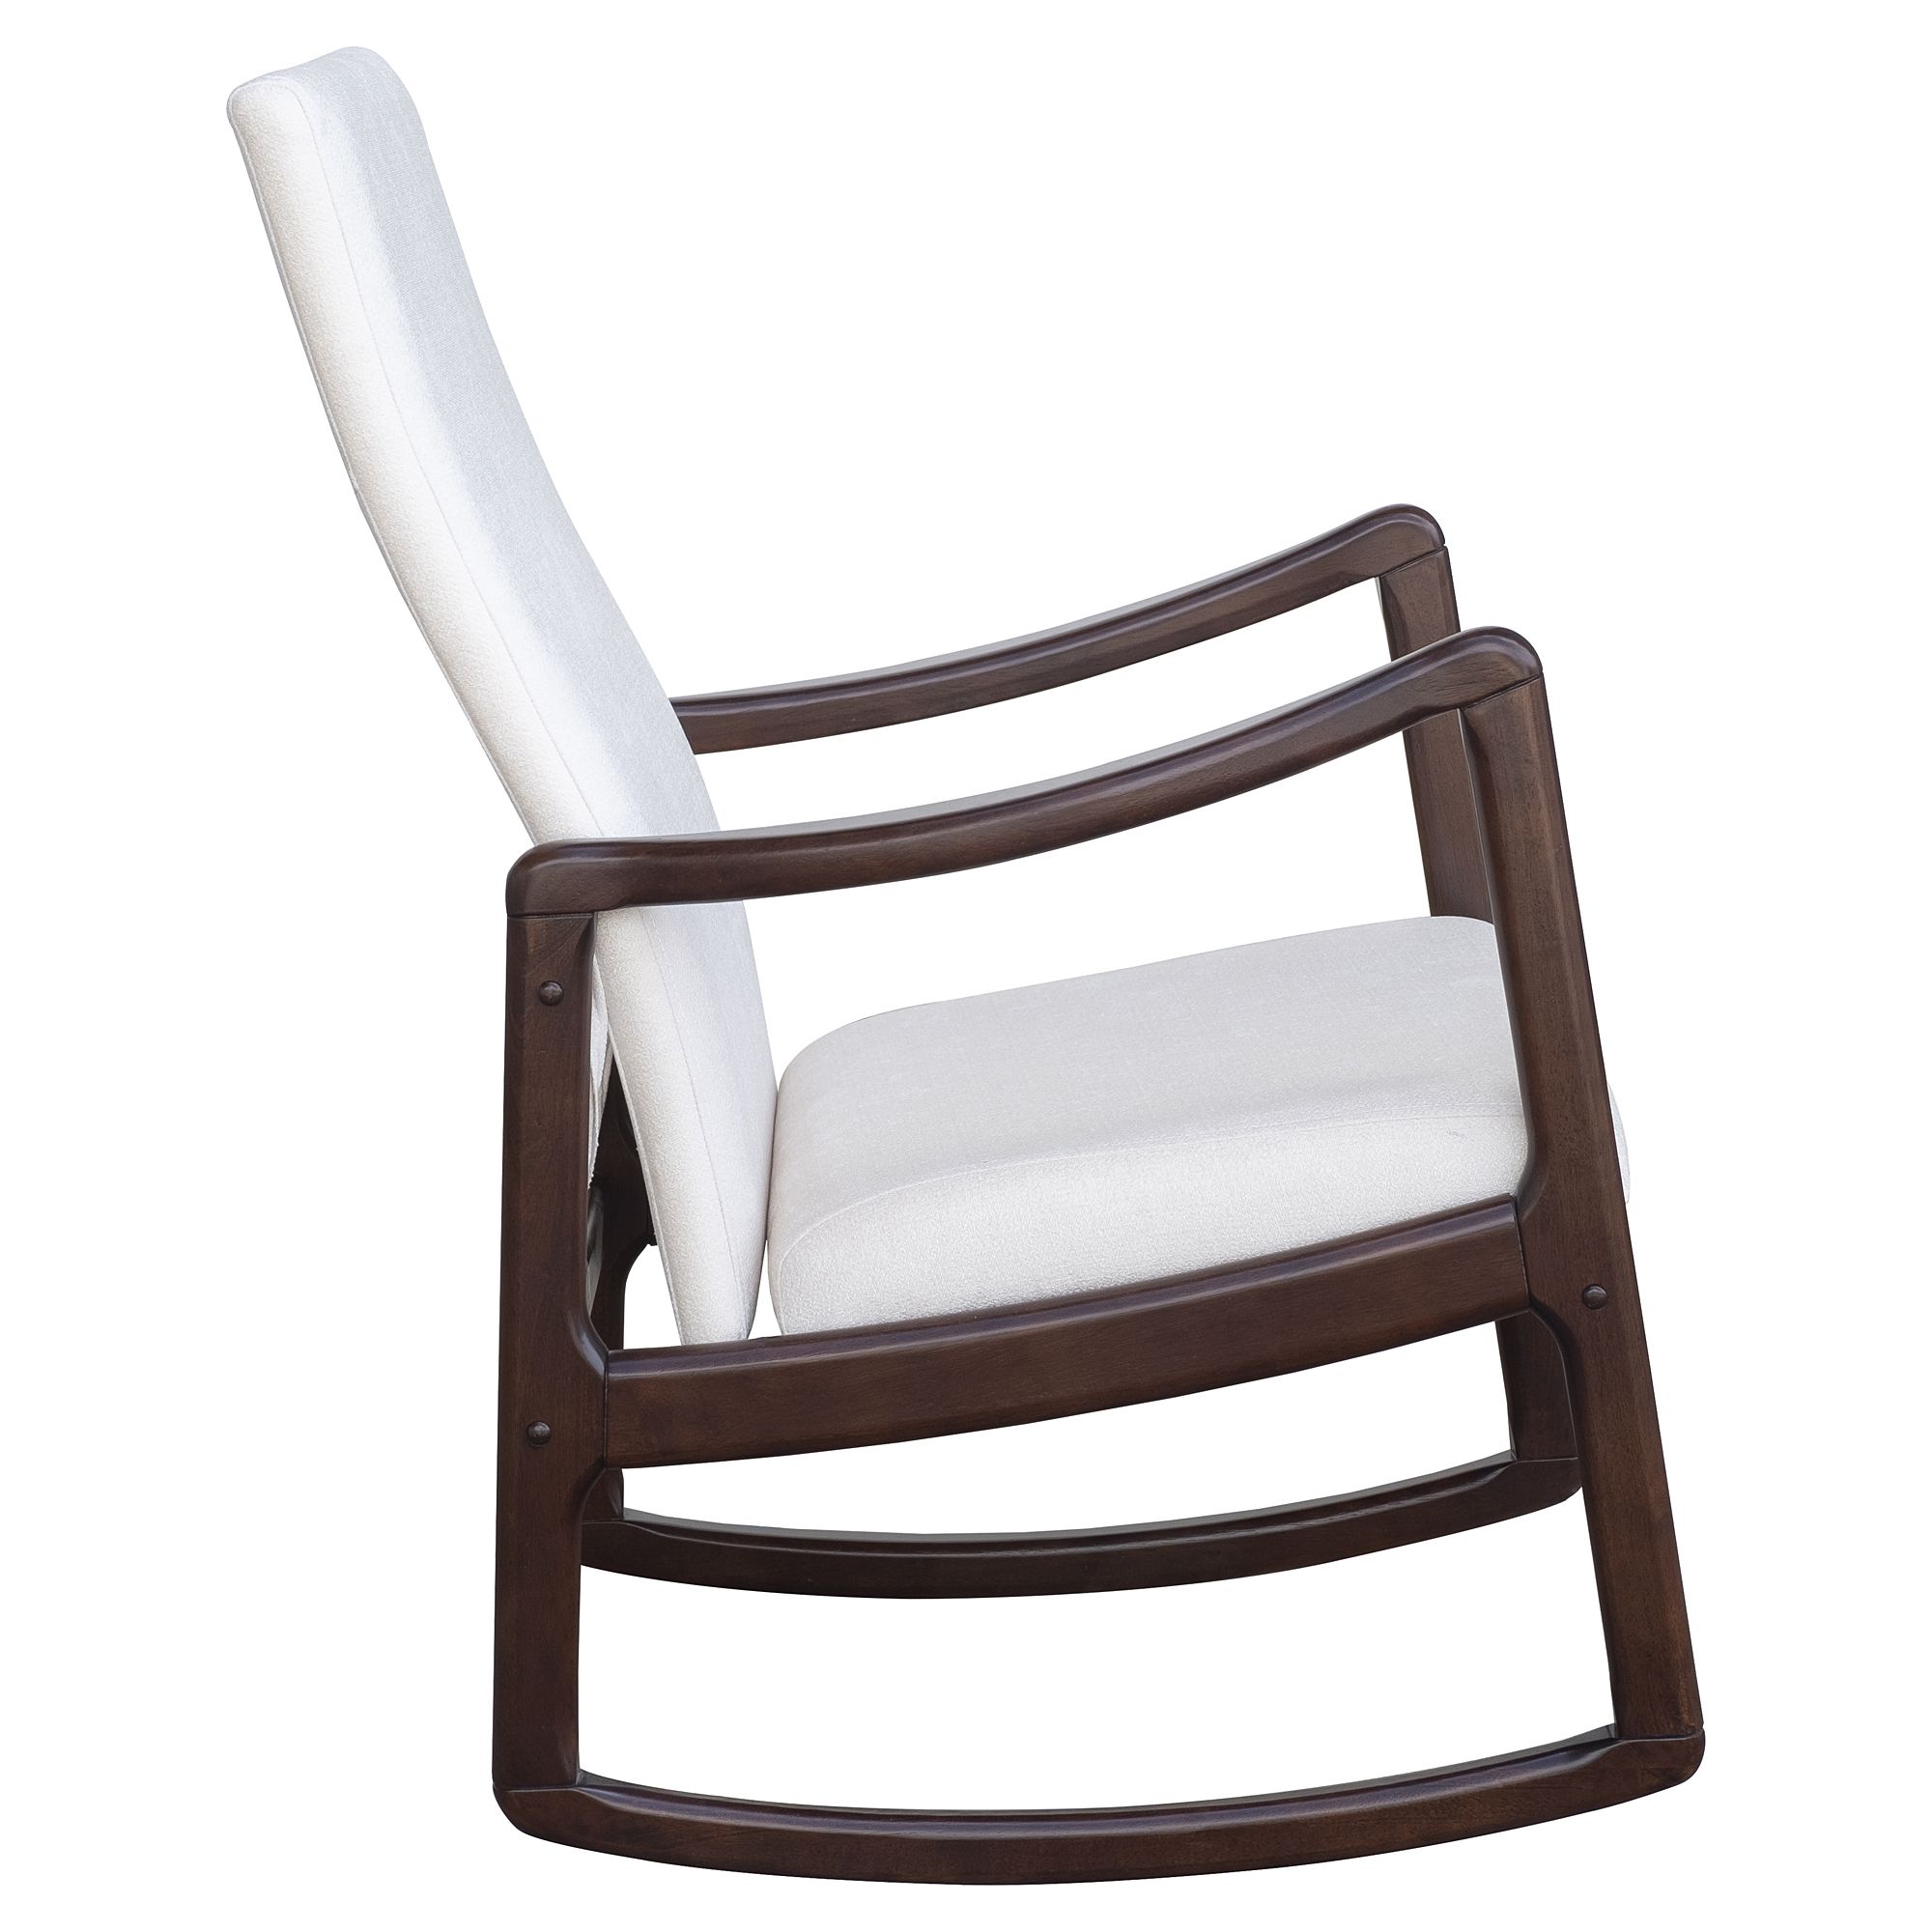 Details About Modern Wood Rocking Chair Indoor Porch Furniture Padded  Rocker Living Room Seat